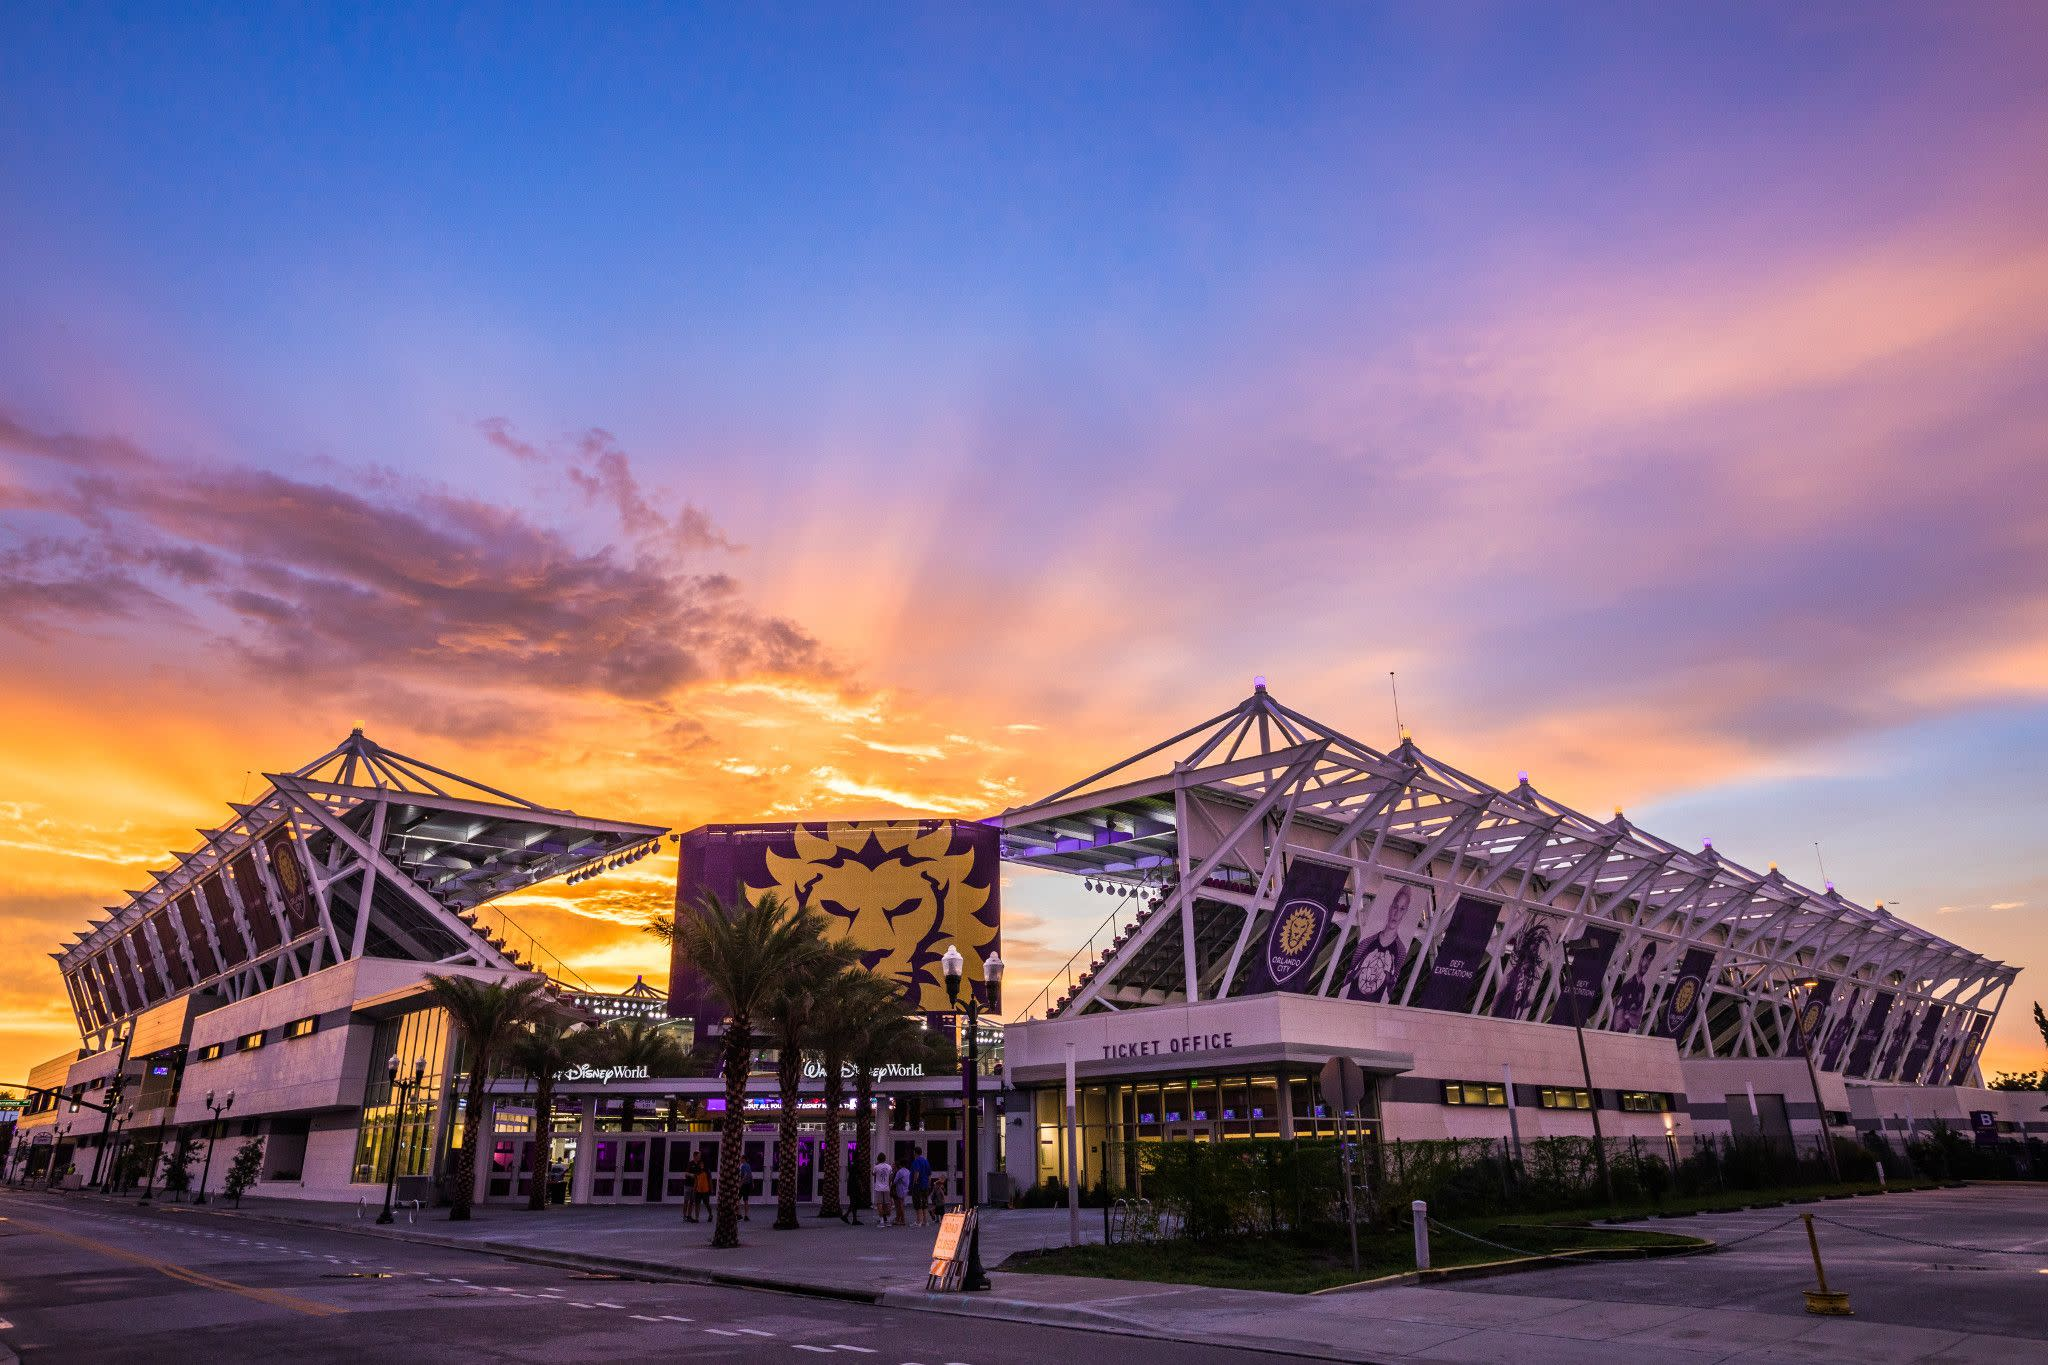 Exploria Stadium in Downtown Orlando